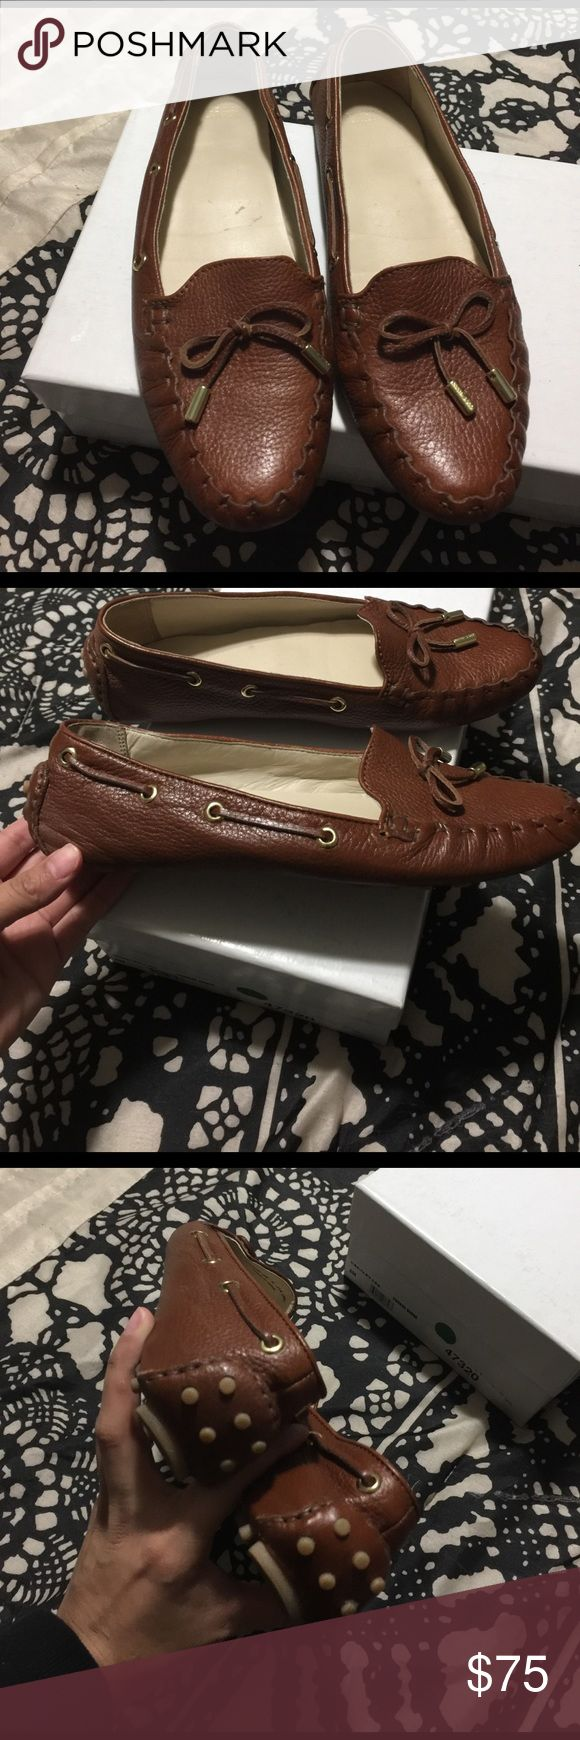 Cole hann loafers Great shape loafer don't have box but can ship in different box great shape has small scuff in frt but not bad at all Cole Haan Shoes Flats & Loafers